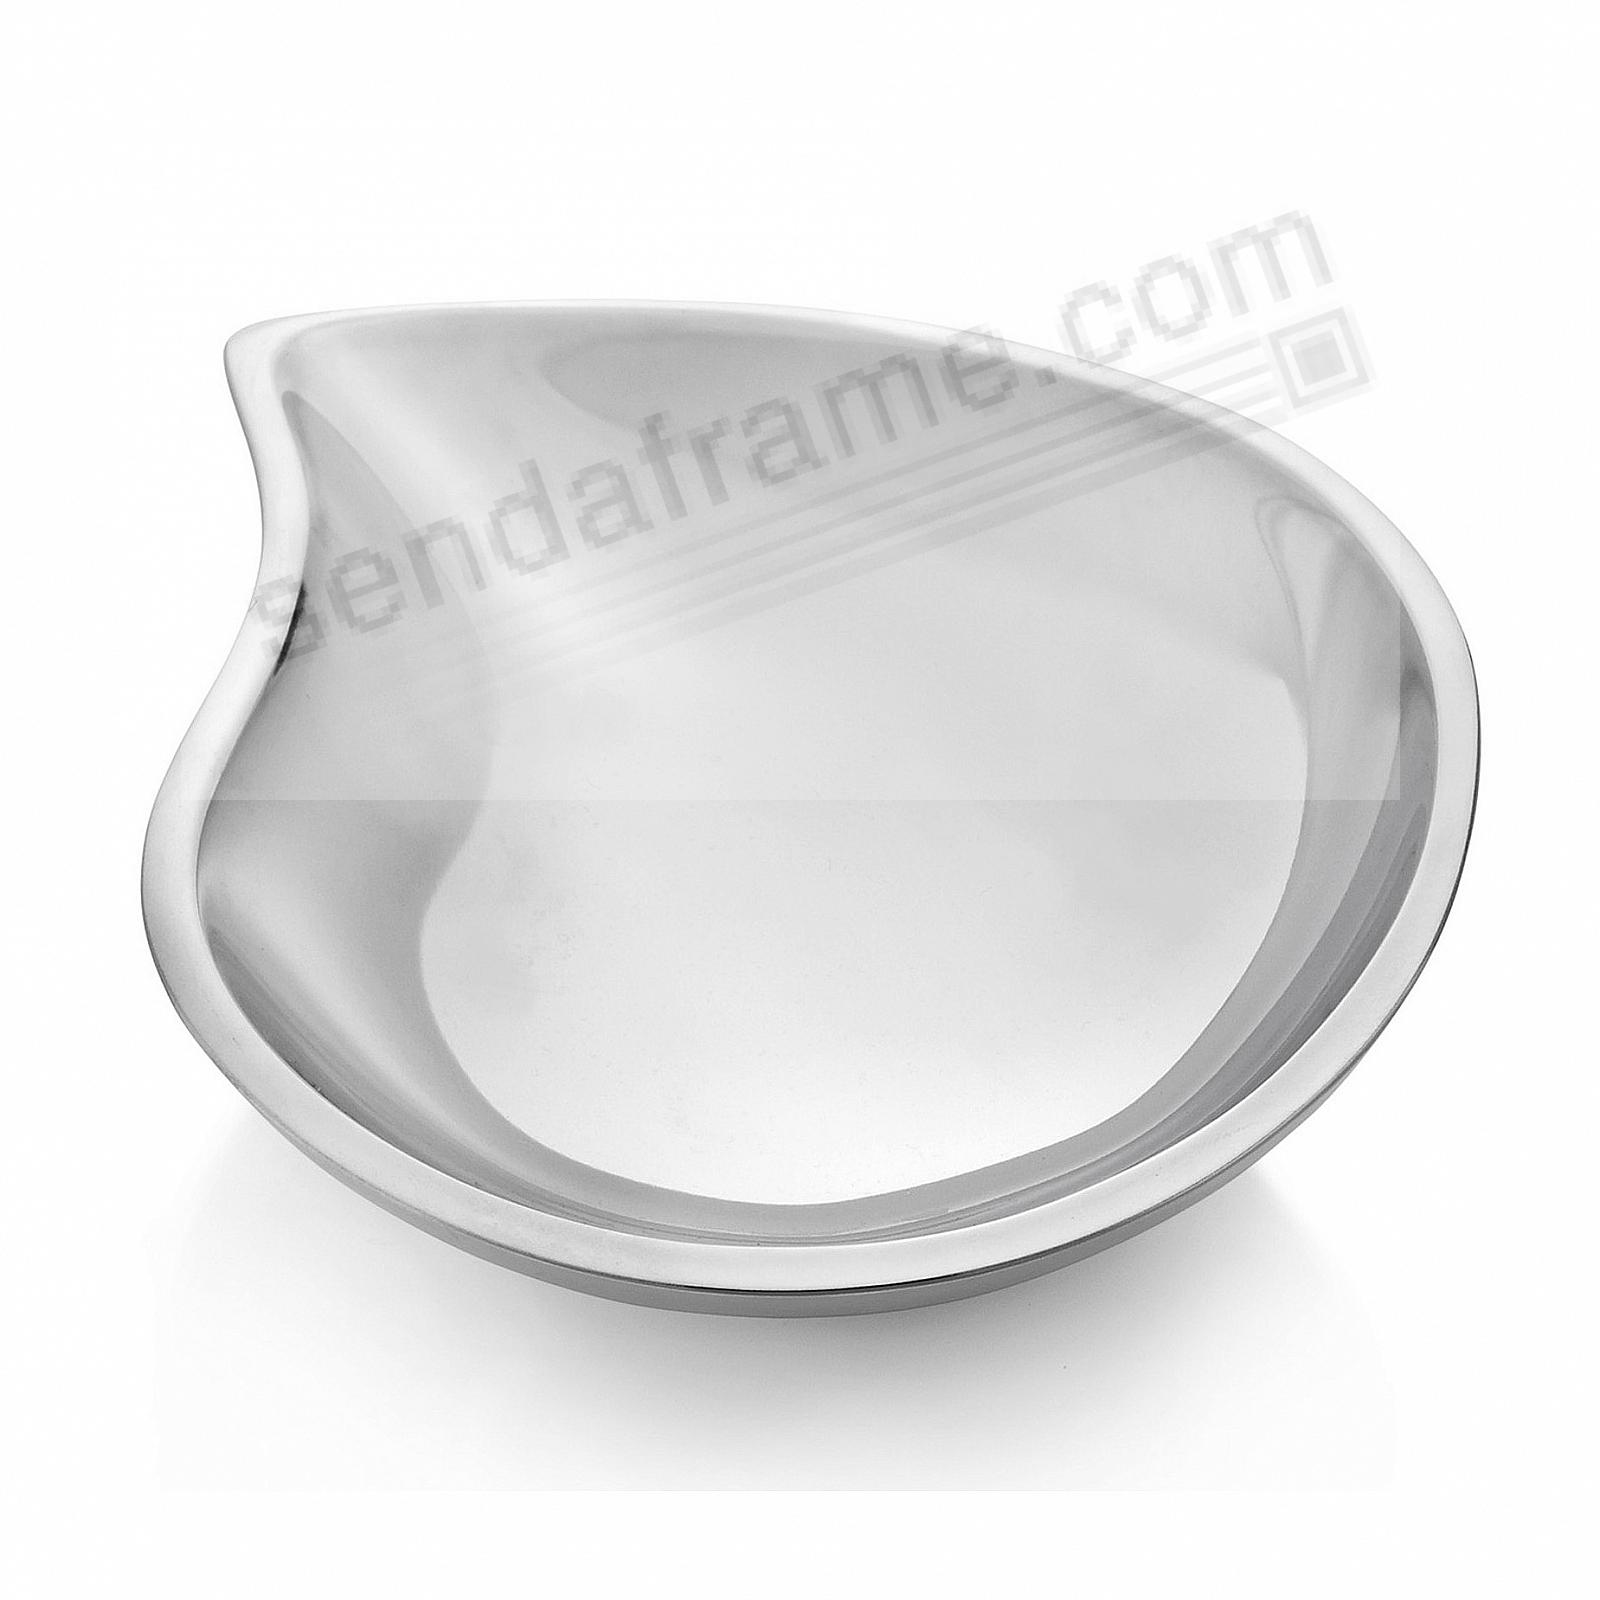 The Original TEARDROP 1.5-Quart 13-in BOWL crafted by Nambe®